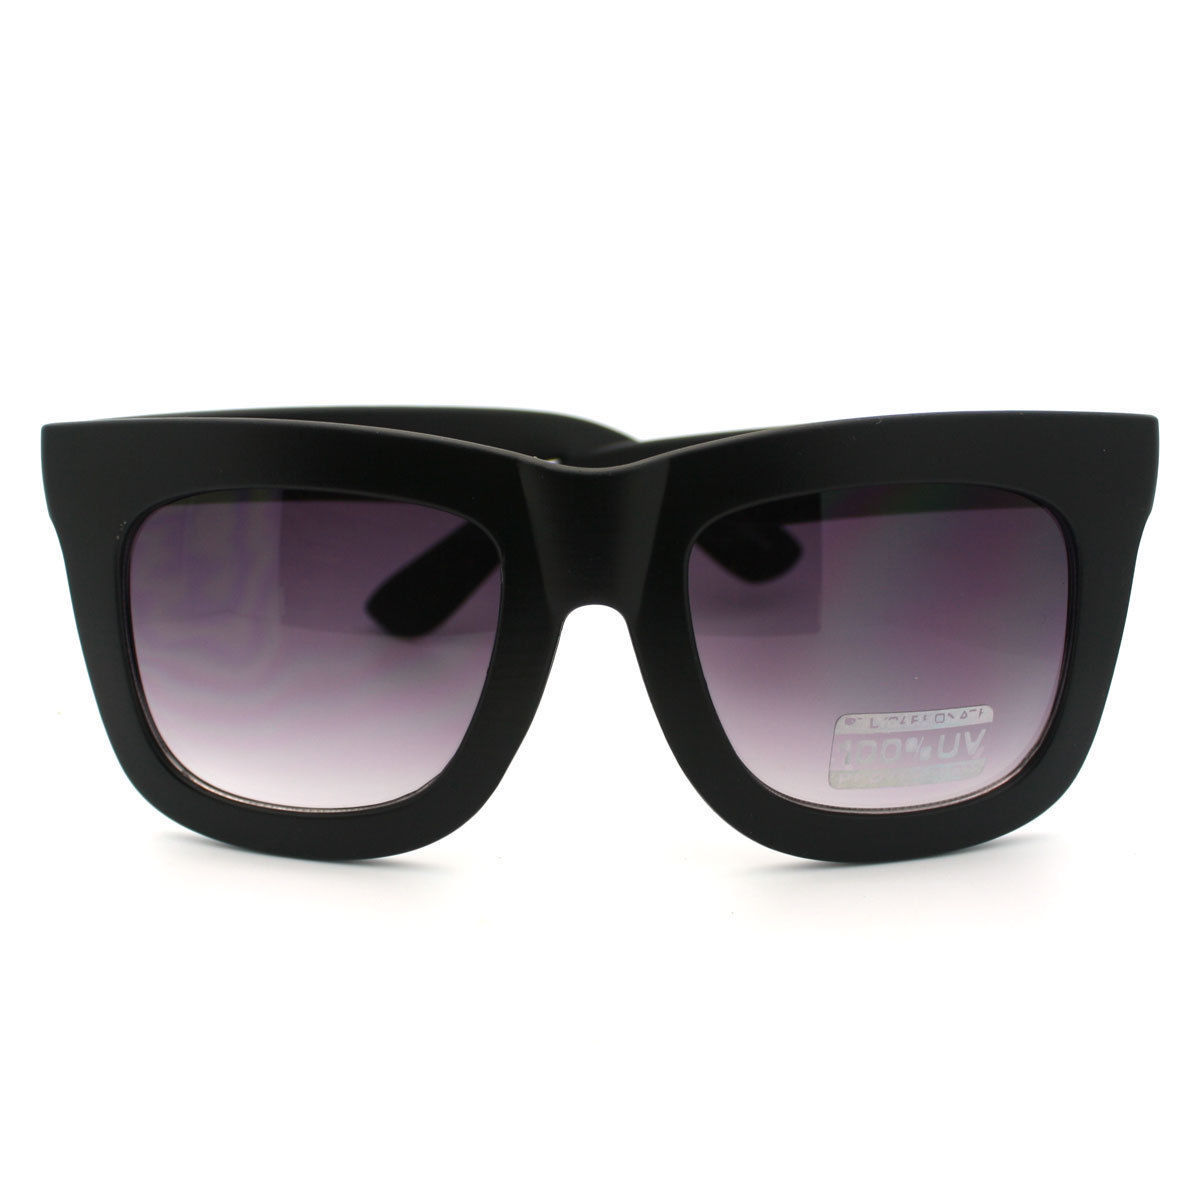 Unisex Sunglasses Super Bold Thick Frame Oversize Fashion Shades